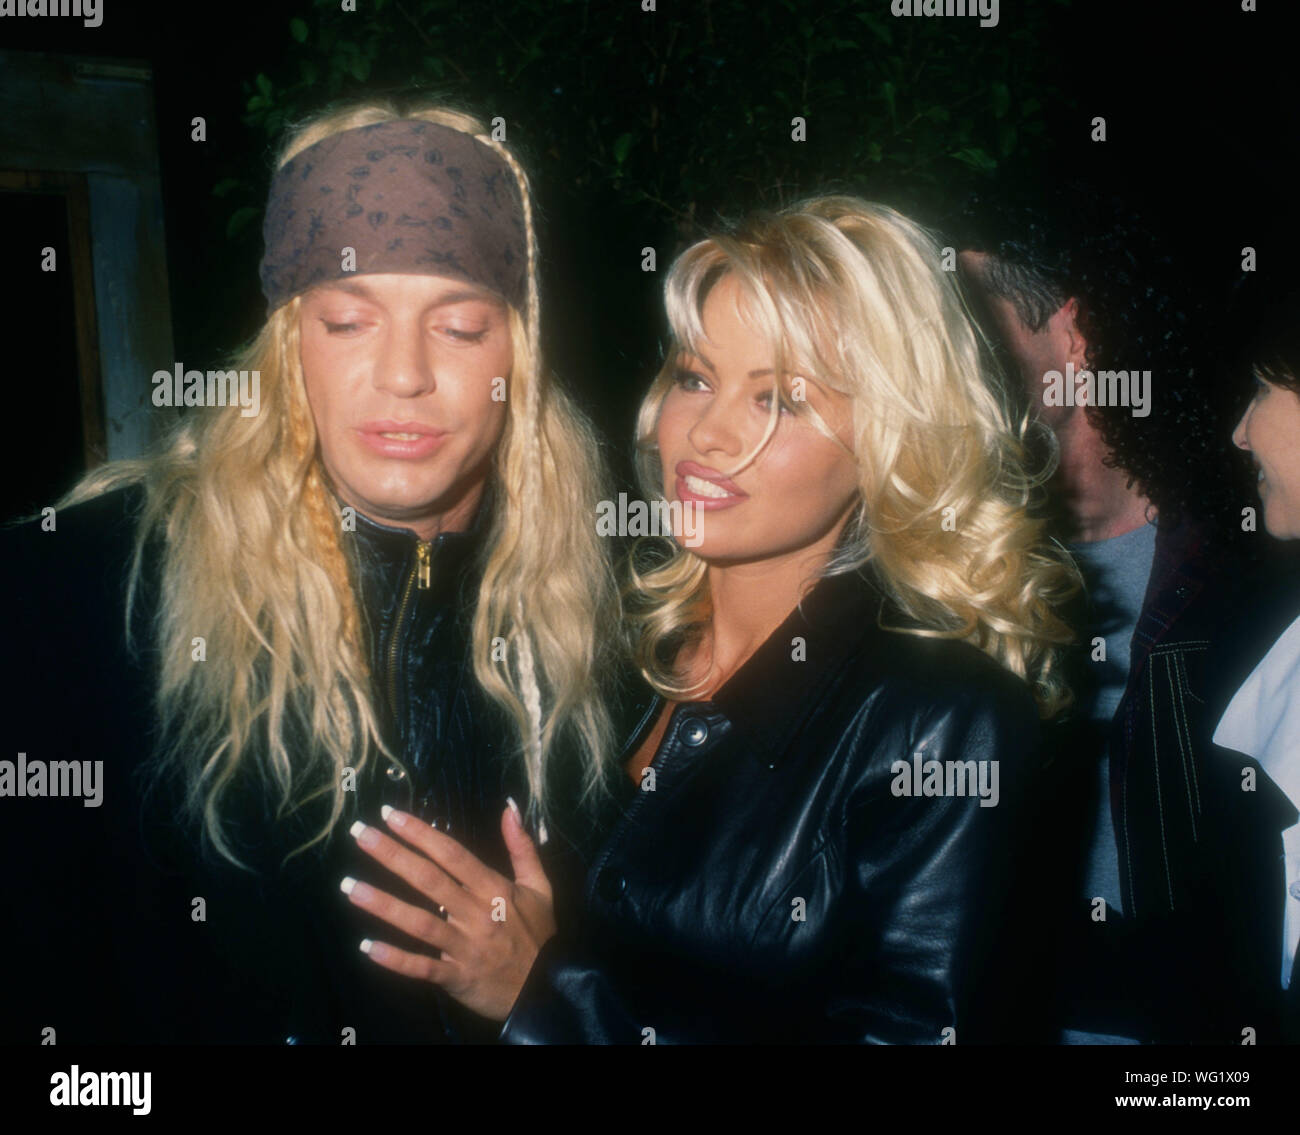 Tn pamela anderson and bret michaels